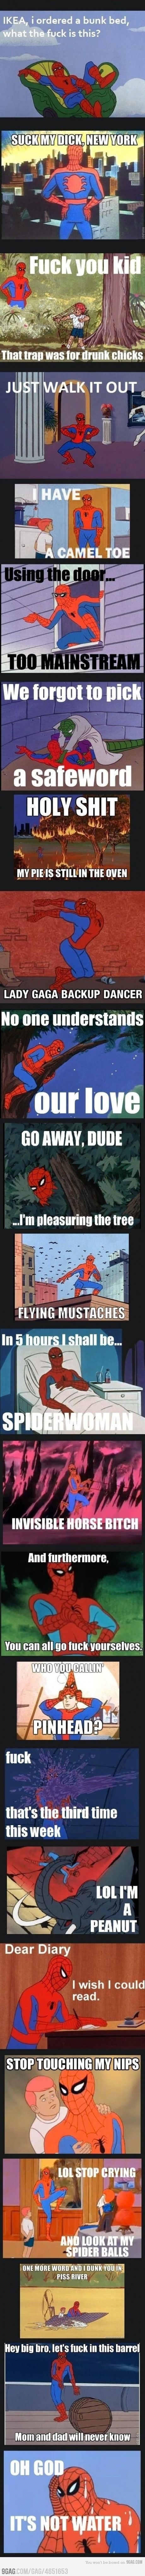 Spidey strikes again!